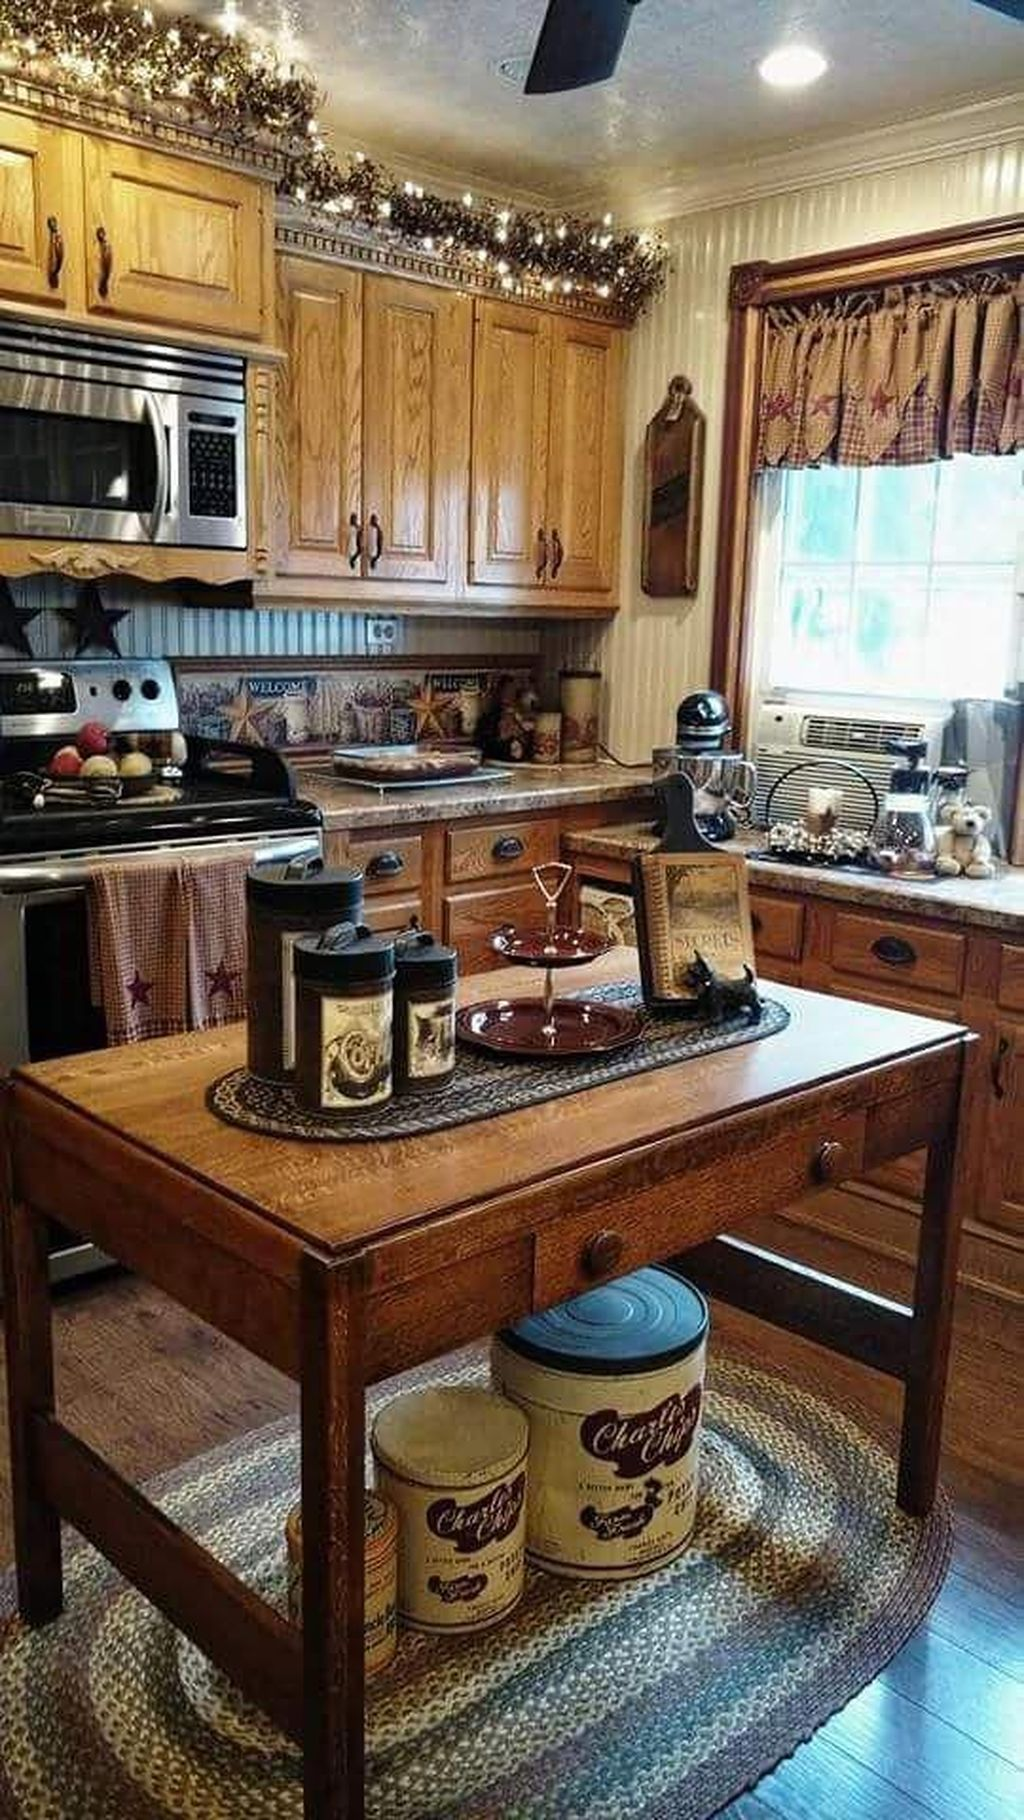 Inspiring Country Kitchen Decor Ideas You Should Copy 30